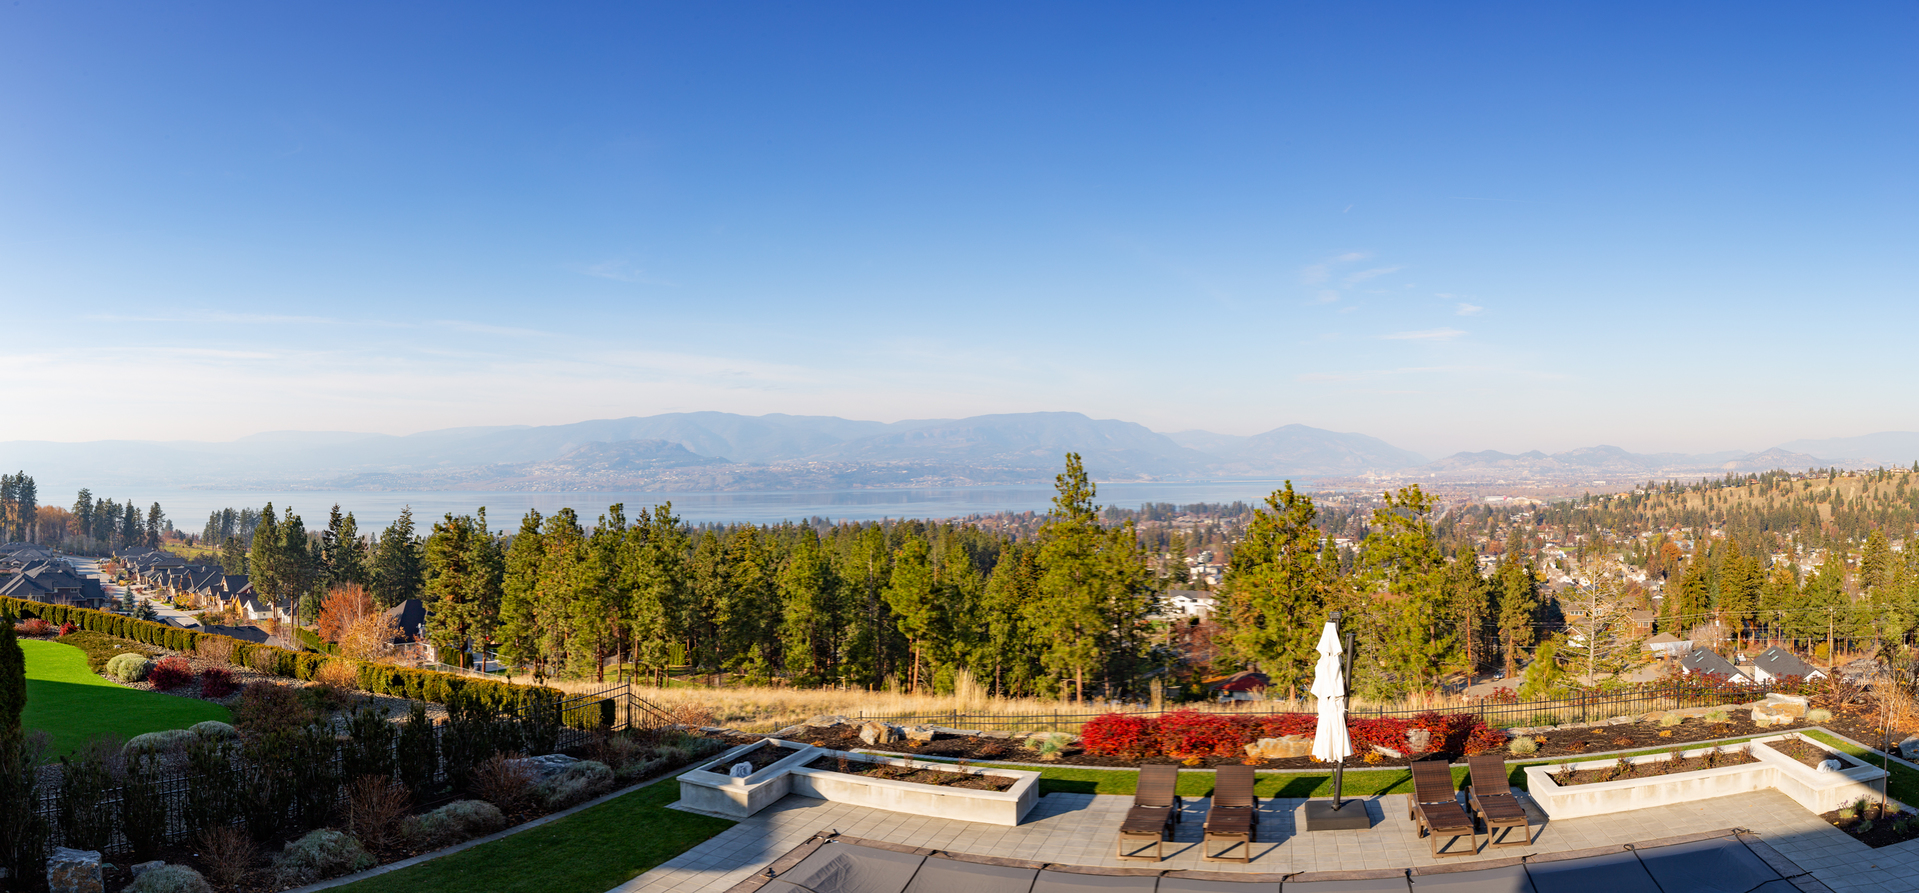 5d3_0591-pano-edit at 4880 Tuscany Lane, Kelowna, Central Okanagan